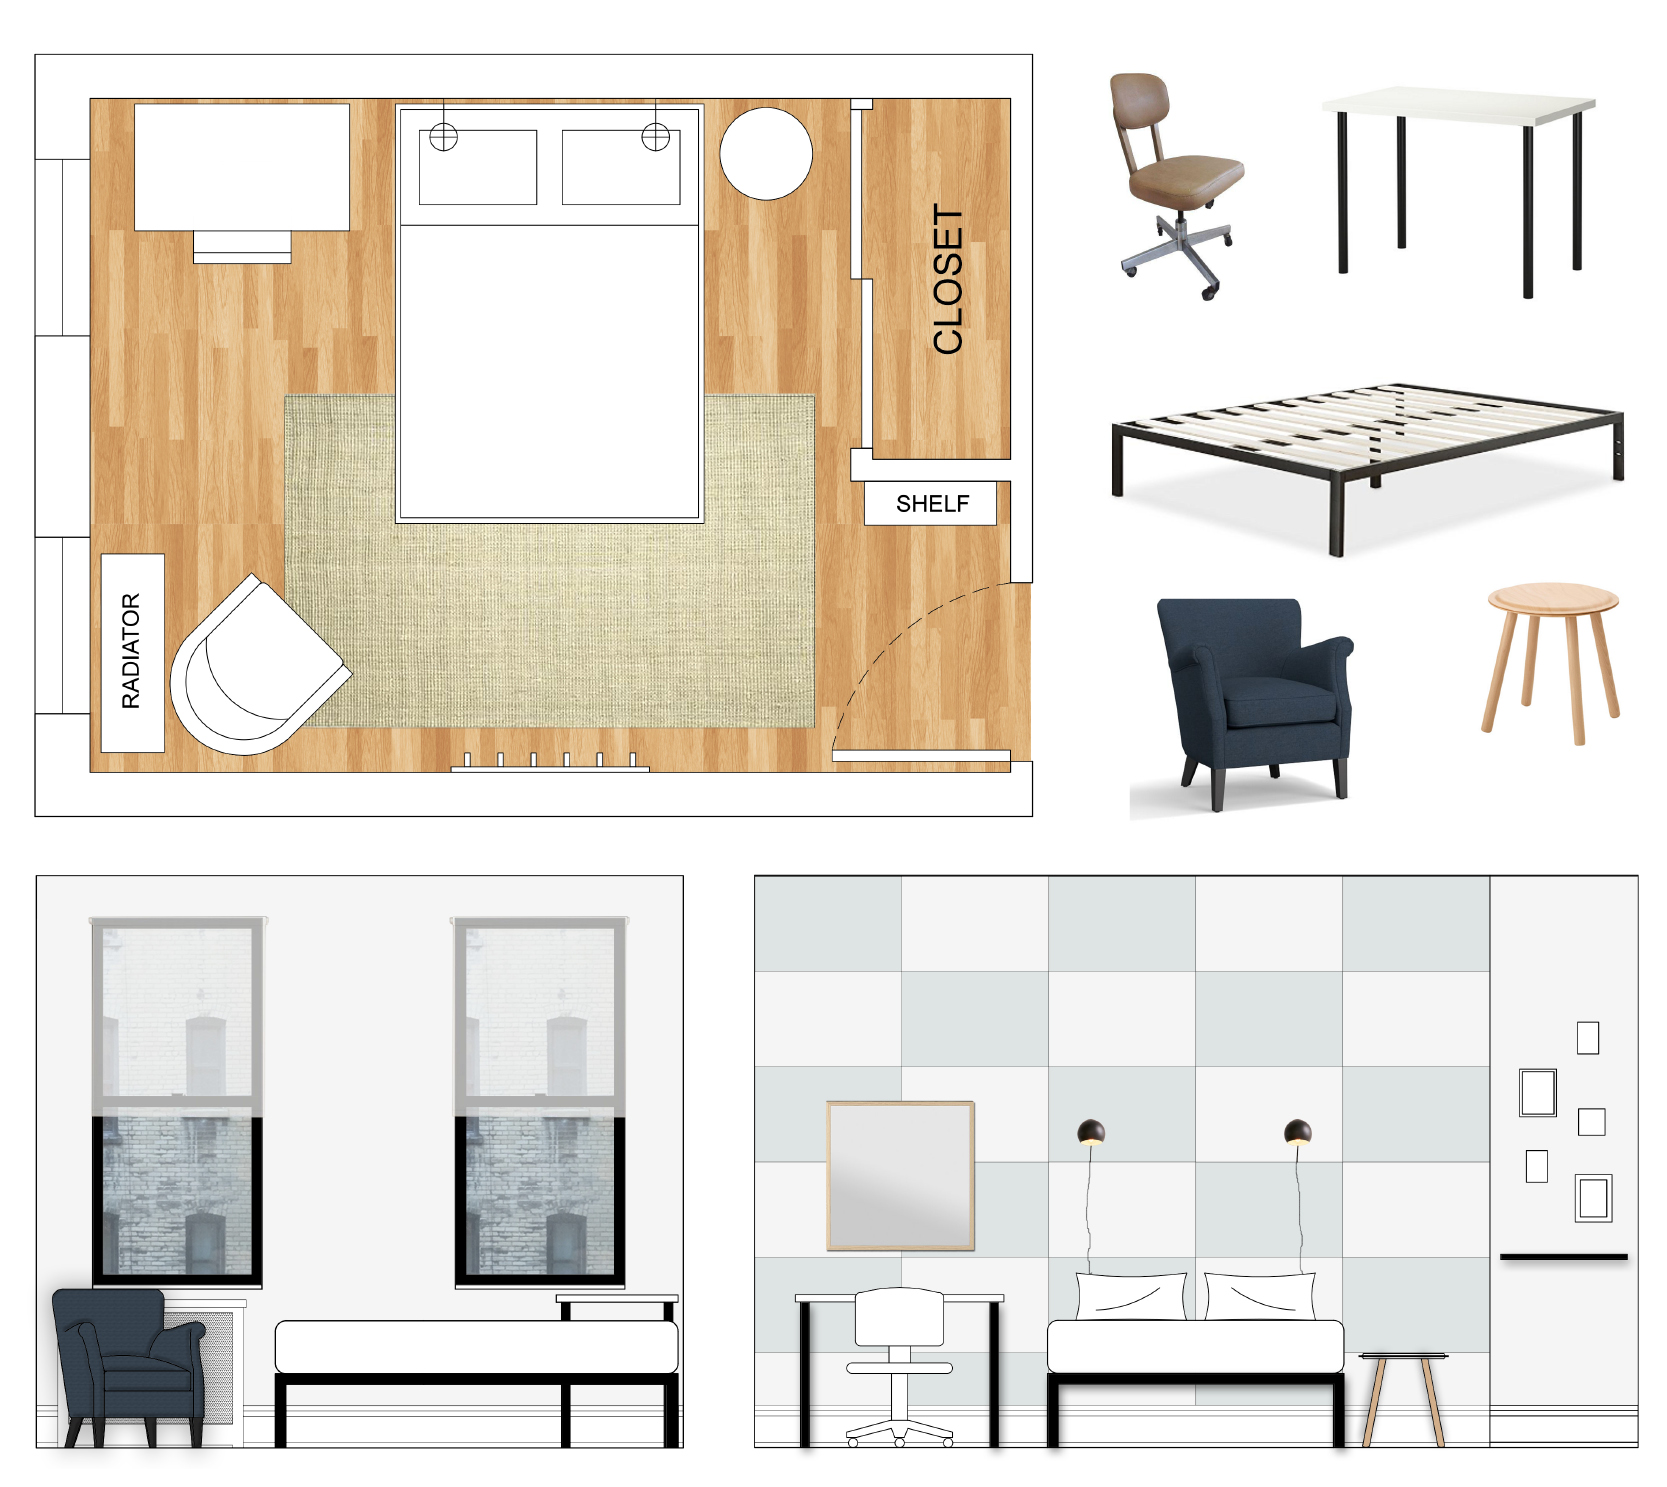 FLOOR PLAN AND RENDERINGS